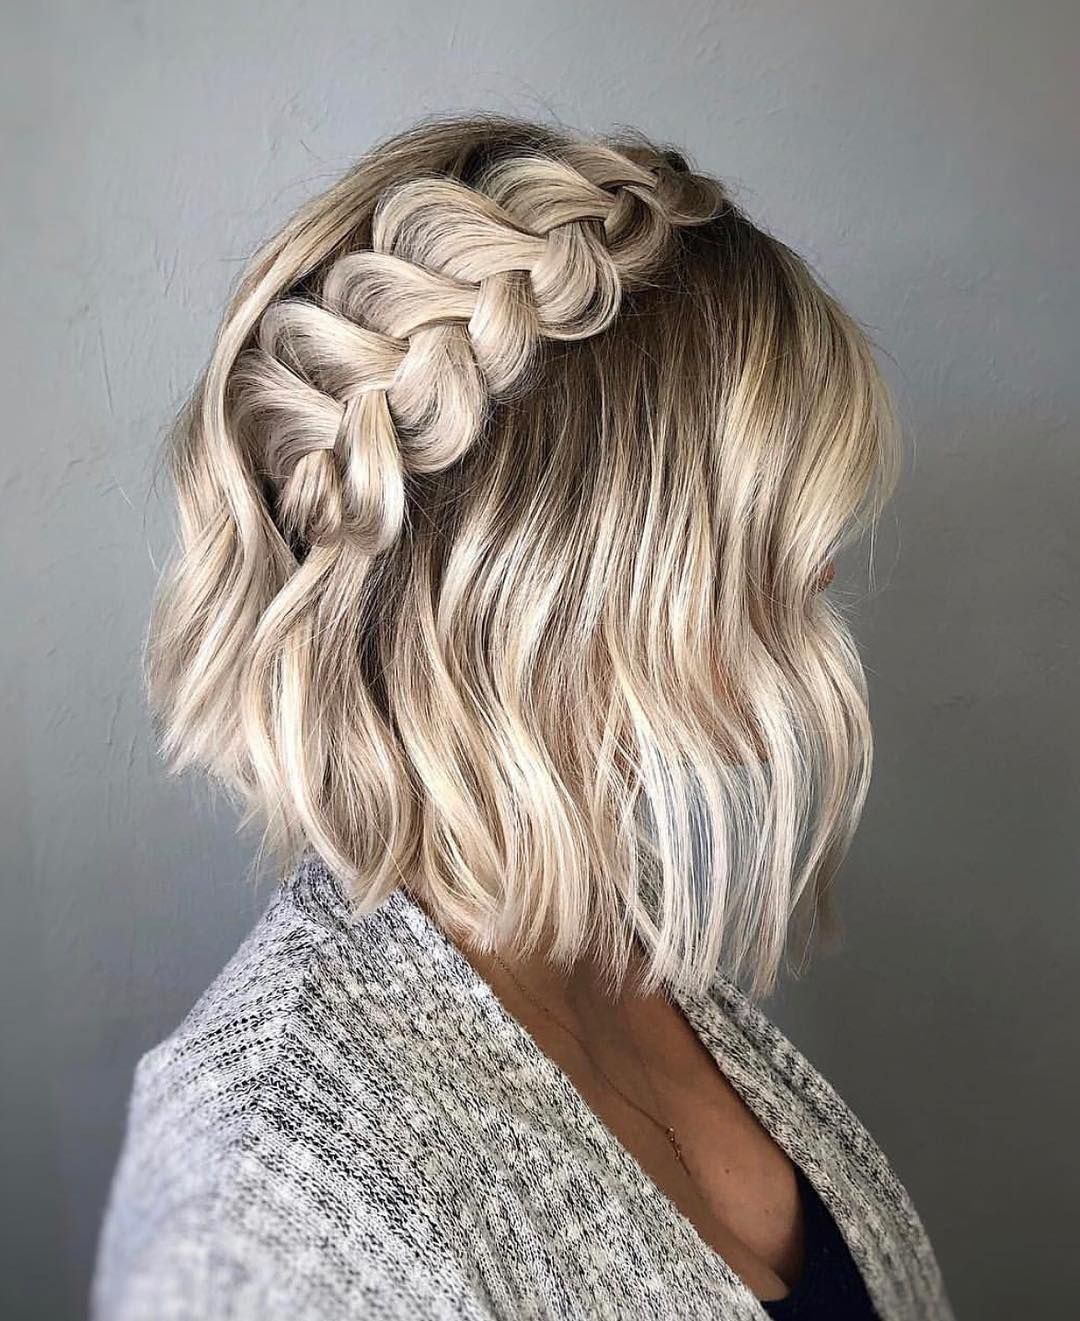 "Awesome Braided Blonde By @hairbysaretta… <a class=""pintag"" href=""/explore/frisuren/"" title=""#frisuren explore Pinterest"">#frisuren</a> <a class=""pintag"" href=""/explore/frisurenkurz/"" title=""#frisurenkurz explore Pinterest"">#frisurenkurz</a> <a class=""pintag"" href=""/explore/frisurenmittellang2018/"" title=""#frisurenmittellang2018 explore Pinterest"">#frisurenmittellang2018</a> <a class=""pintag"" href=""/explore/frisurentrends2019/"" title=""#frisurentrends2019 explore Pinterest"">#frisurentrends2019</a> <a class=""pintag"" href=""/explore/hairstyles/"" title=""#hairstyles explore Pinterest"">#hairstyles</a><p><a href=""http://www.homeinteriordesign.org/2018/02/short-guide-to-interior-decoration.html"">Short guide to interior decoration</a></p>"